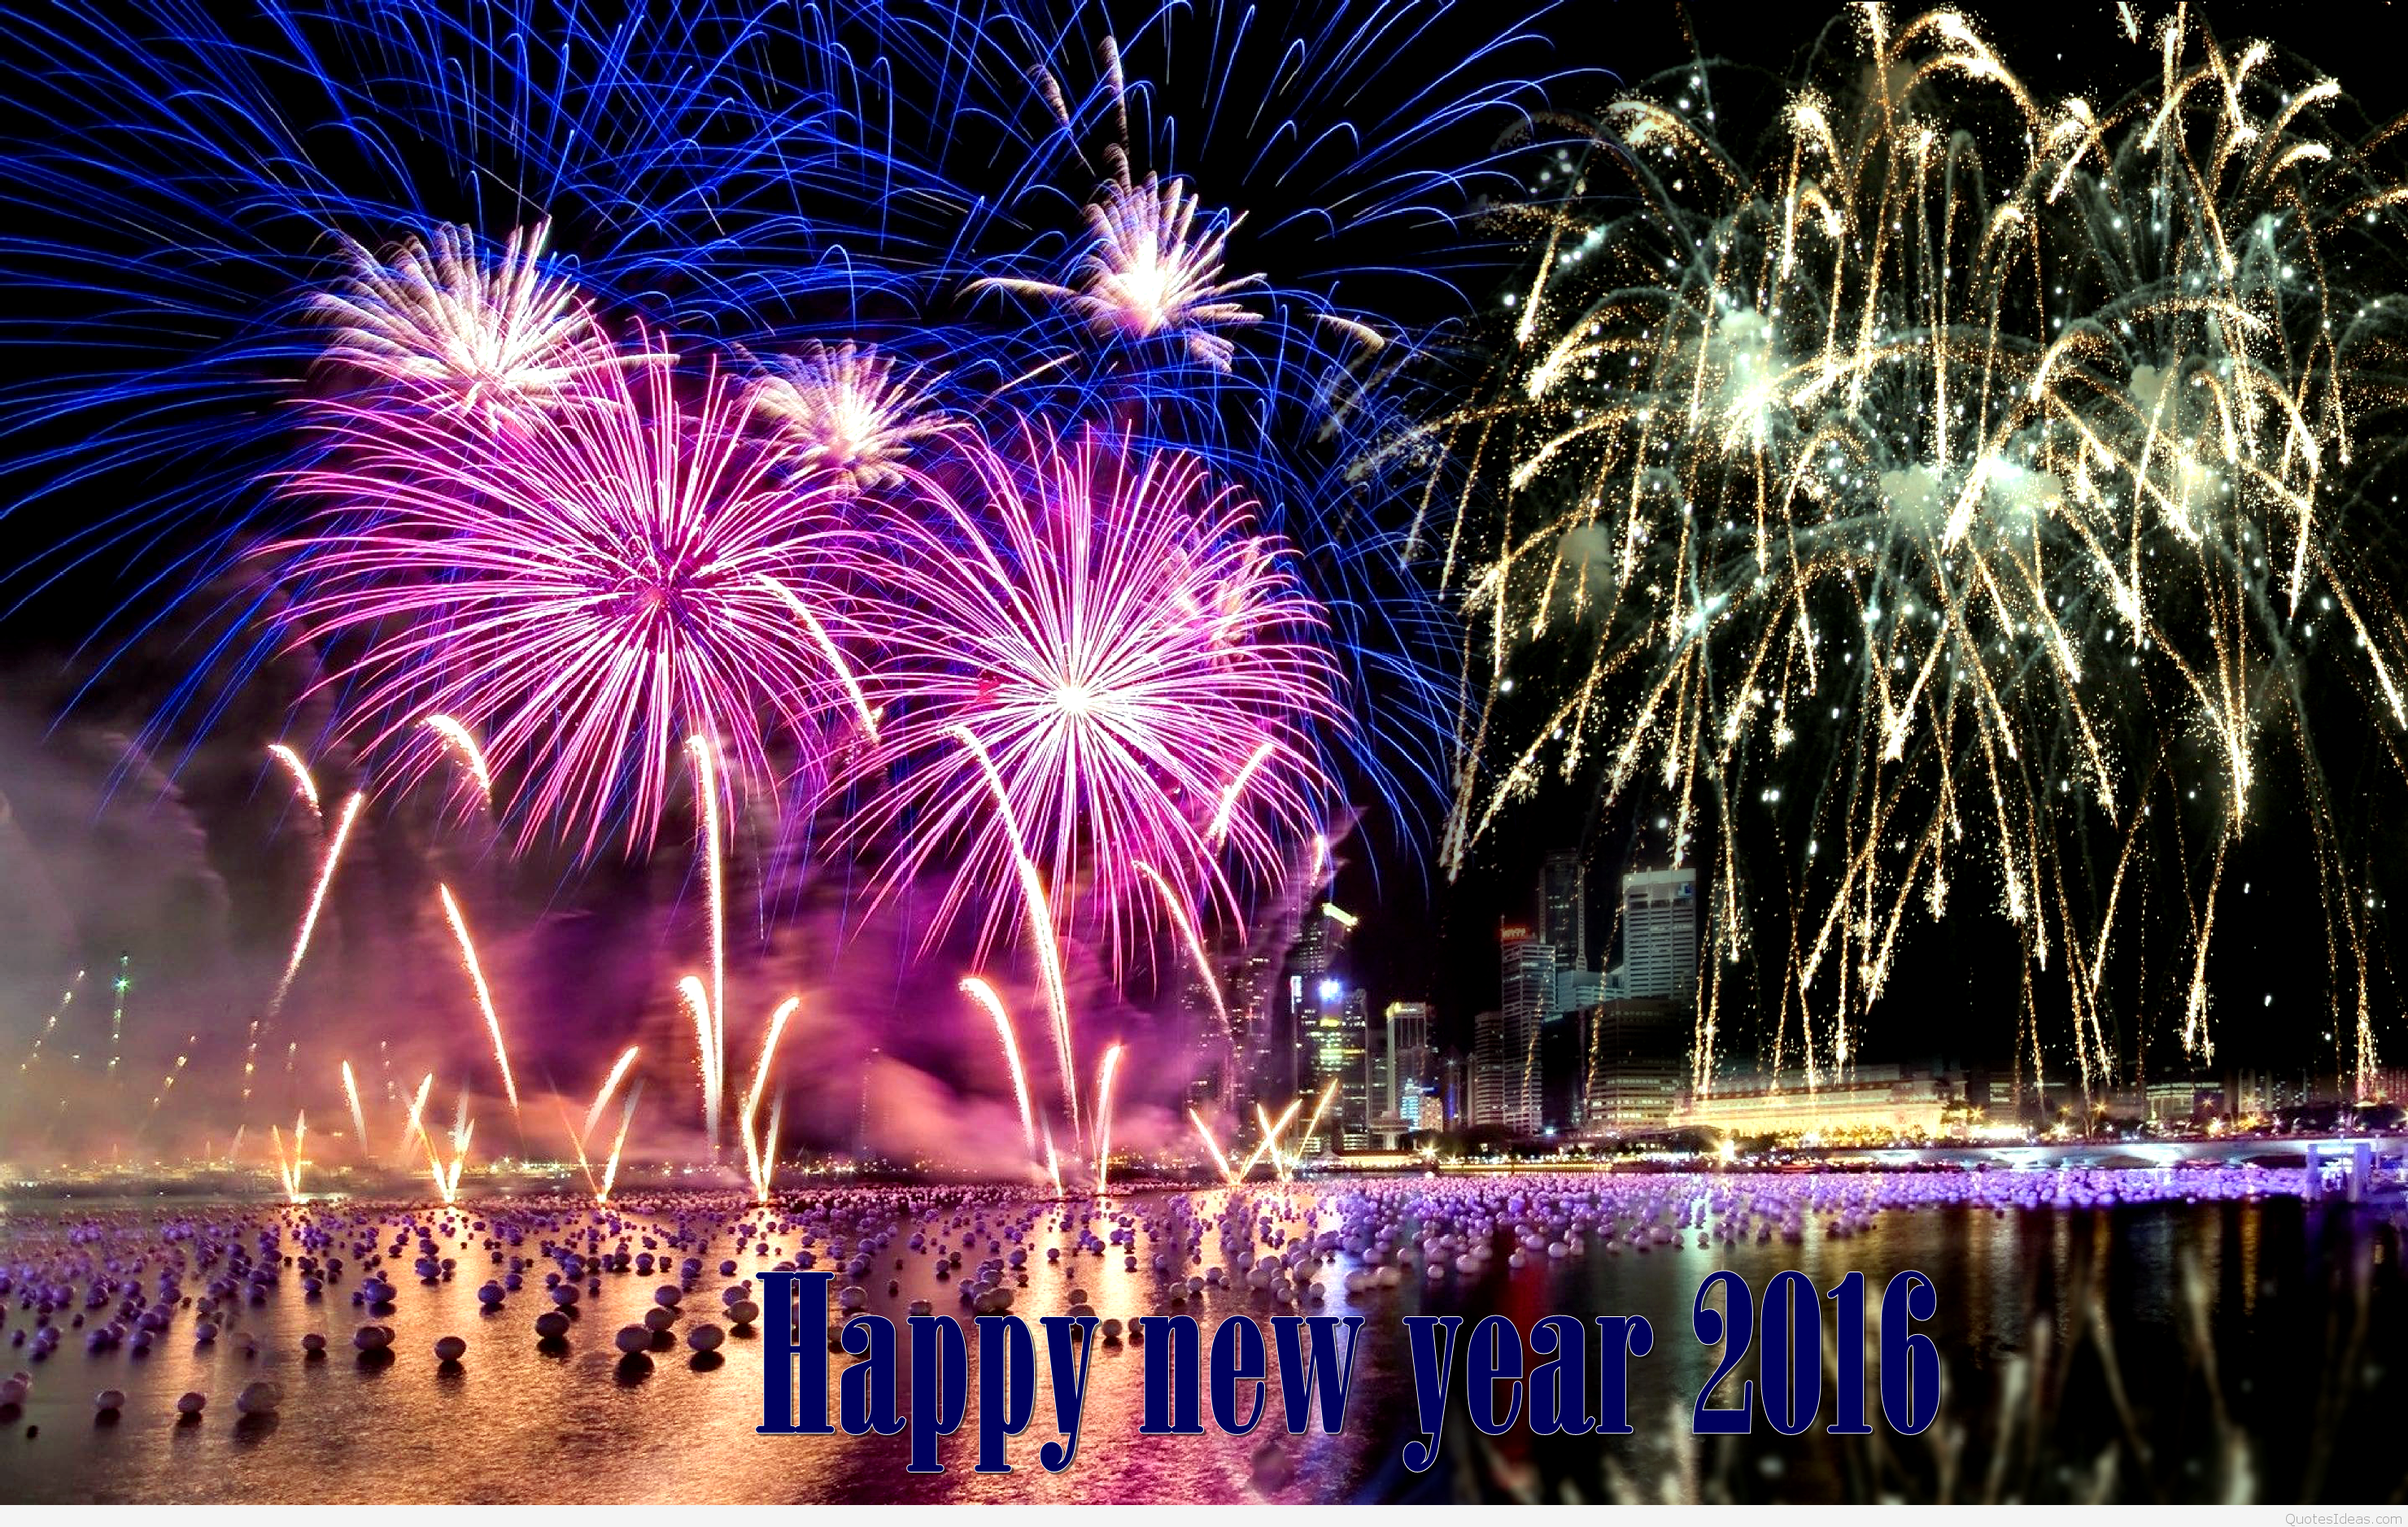 Happy New Year 2015 CountDown Celebration Fireworks Wallpaper